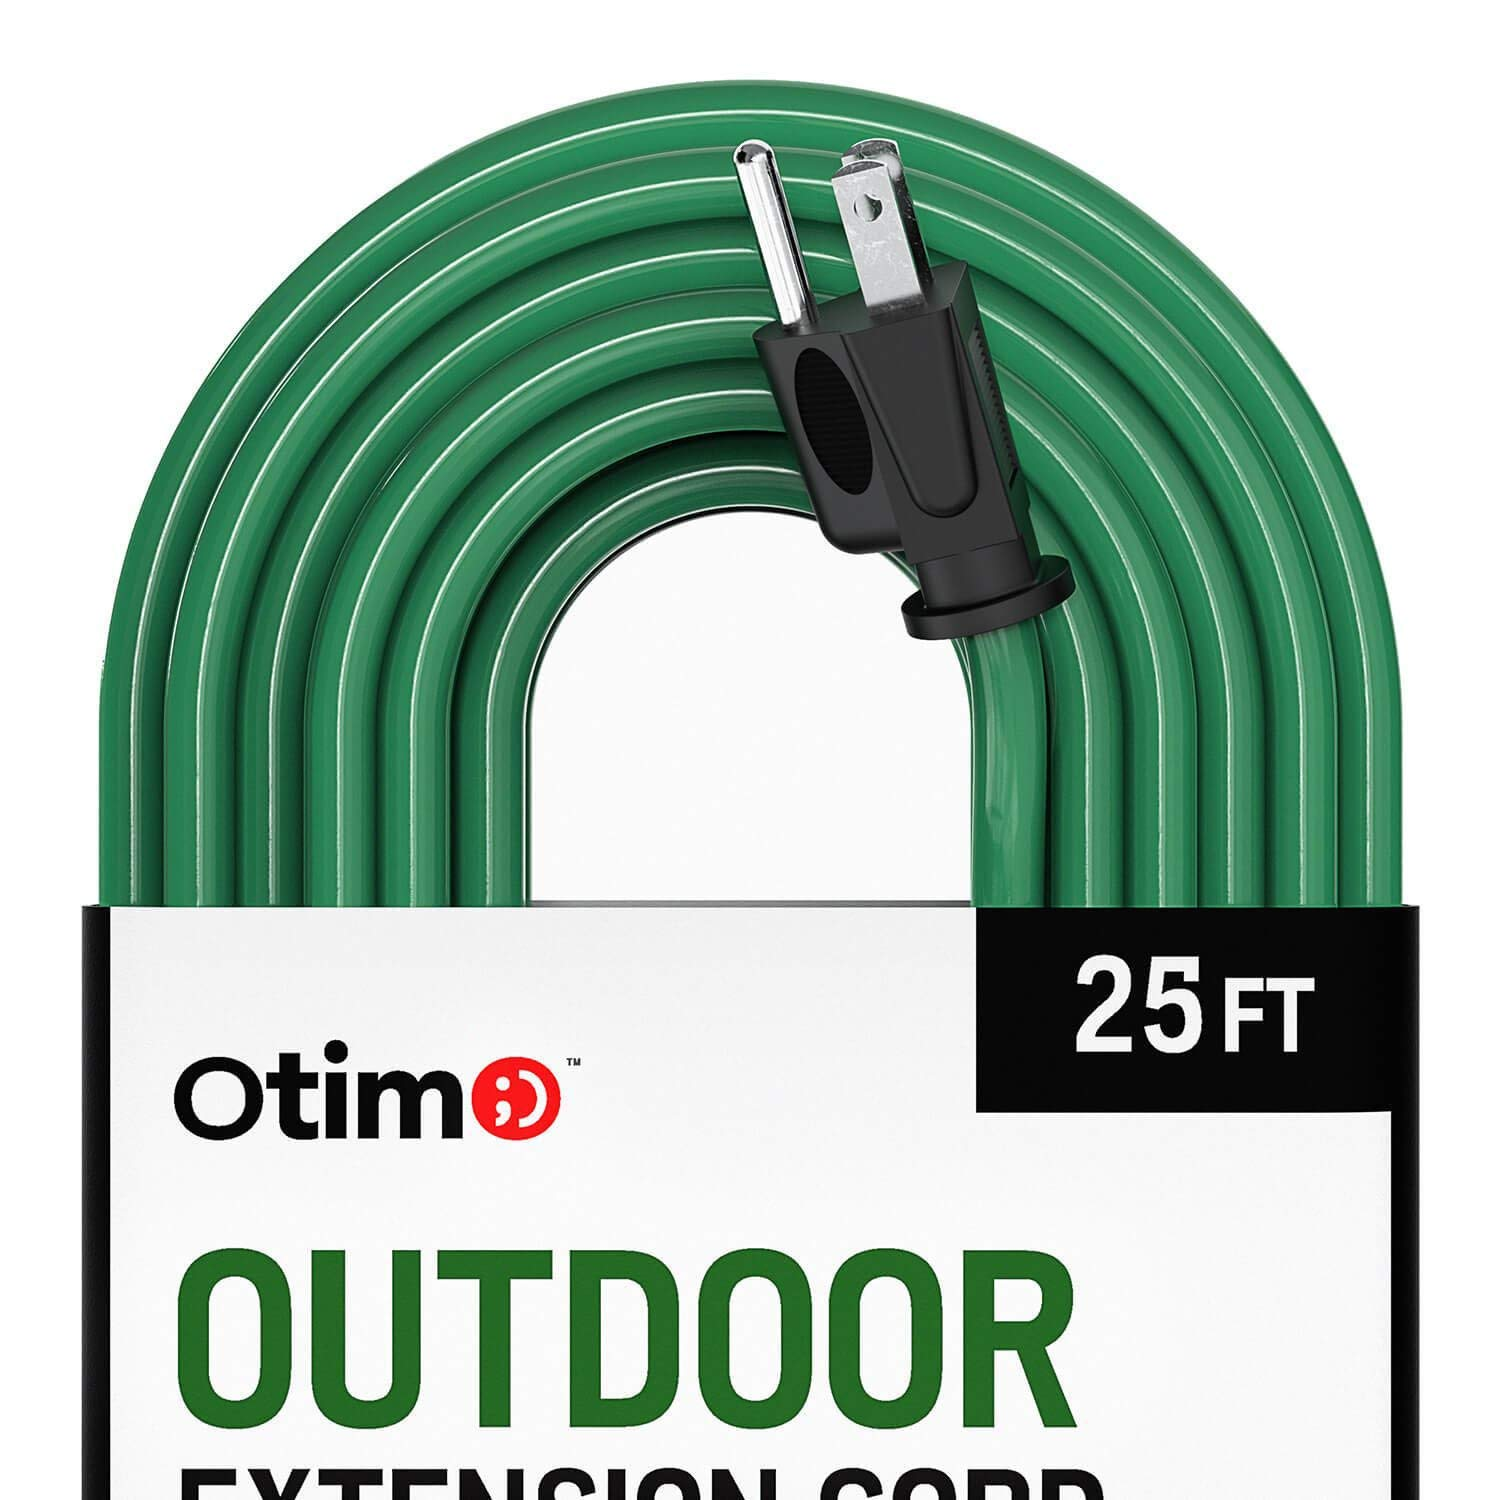 Otimo 25 ft 16/3 Outdoor Heavy Duty Extension Cord - 3 Prong Extension Cord, Green